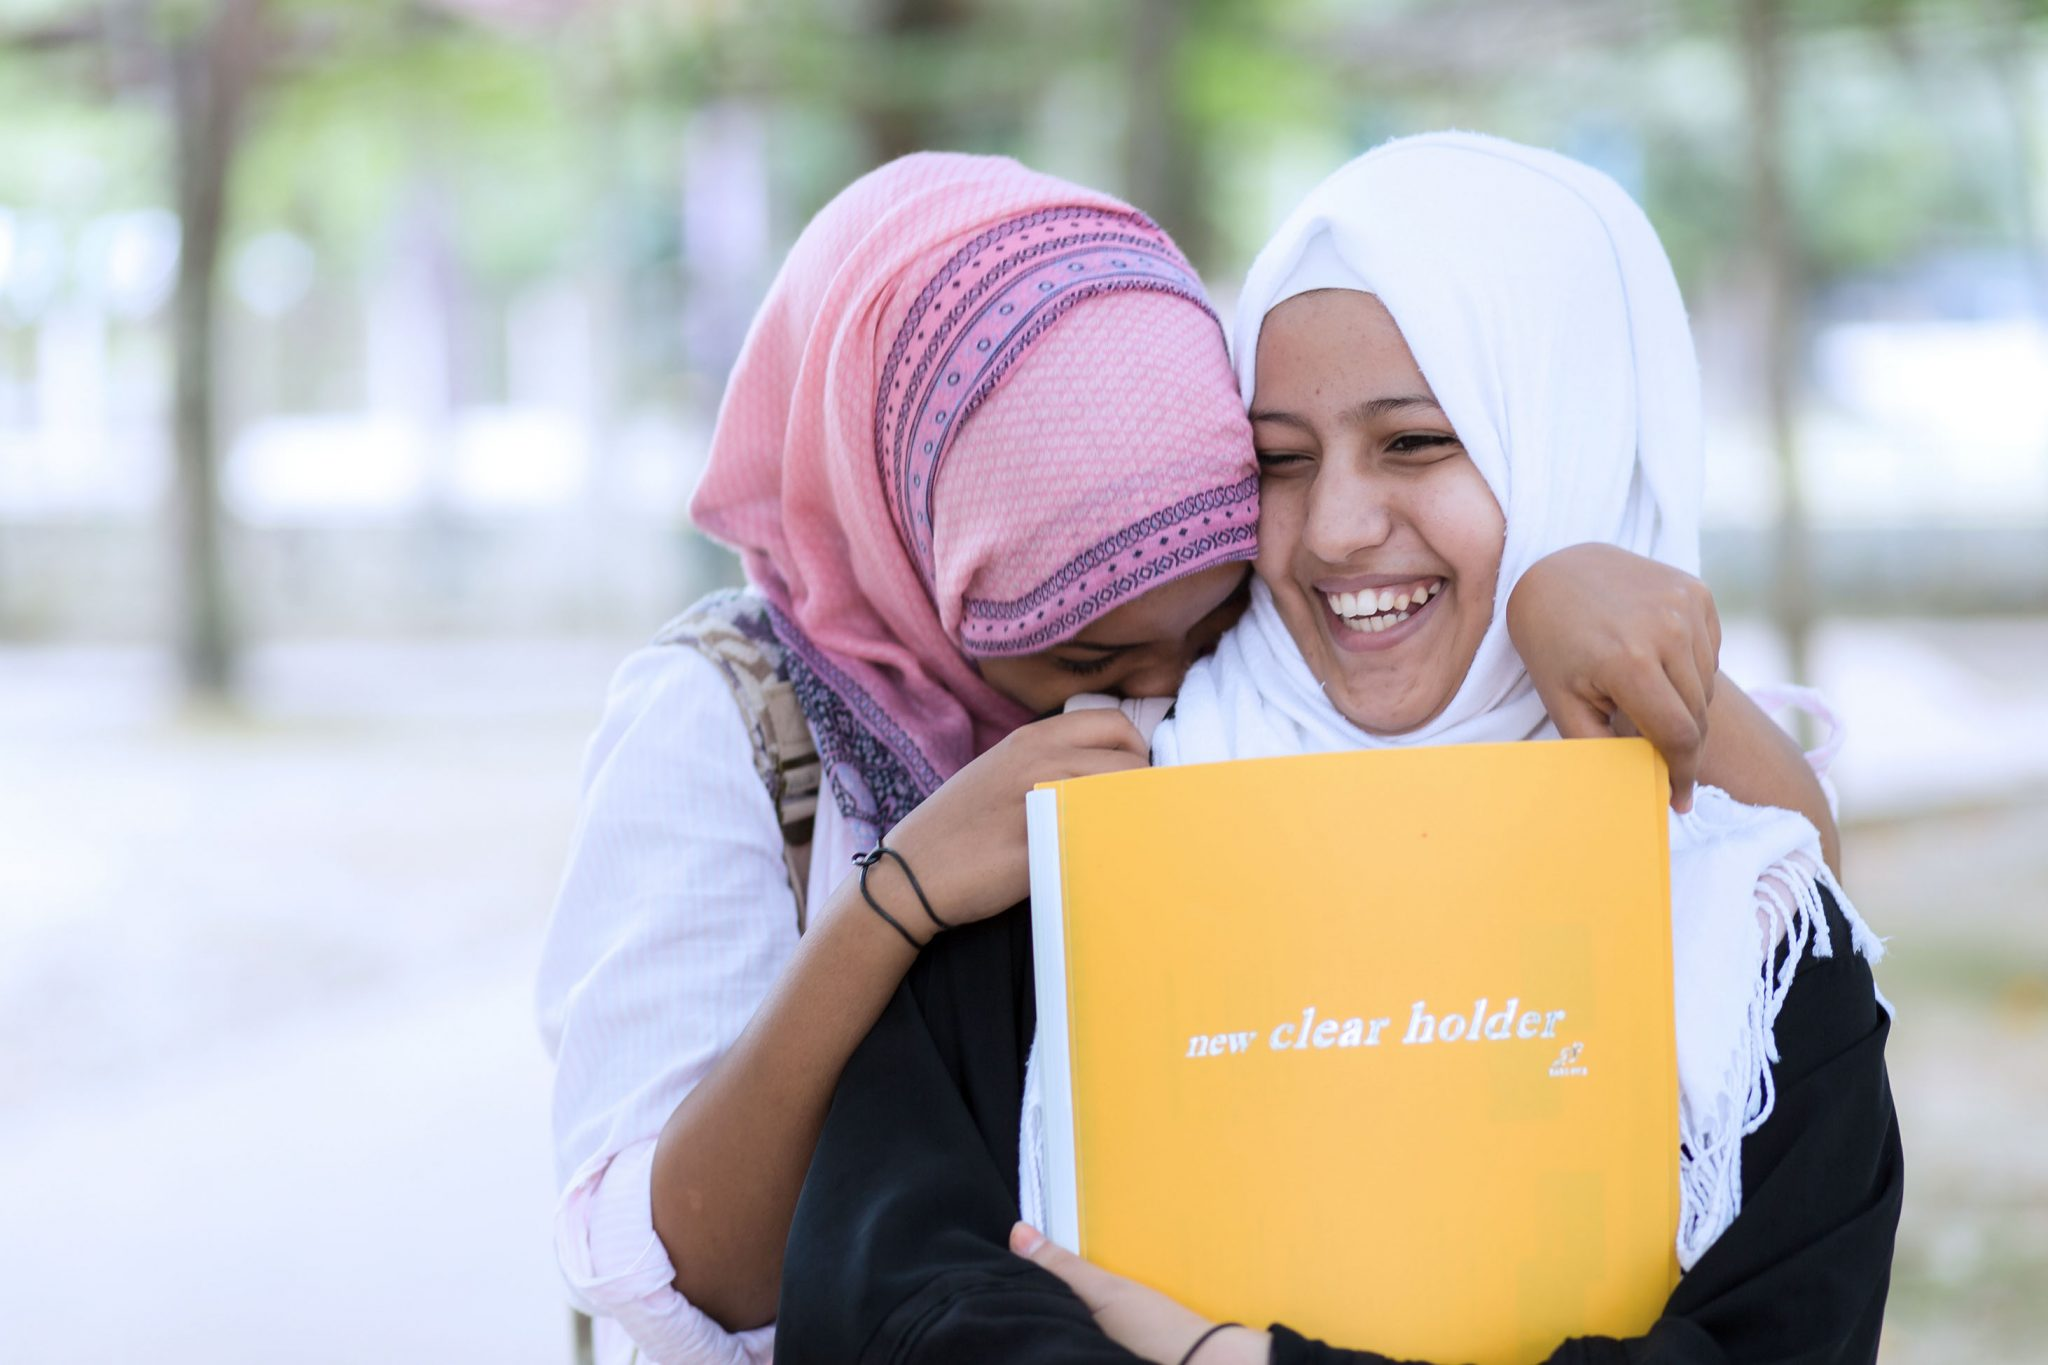 Fugee HiEd Scholarship: Increasing Access to Higher Education through Reducing Financial Barriers.